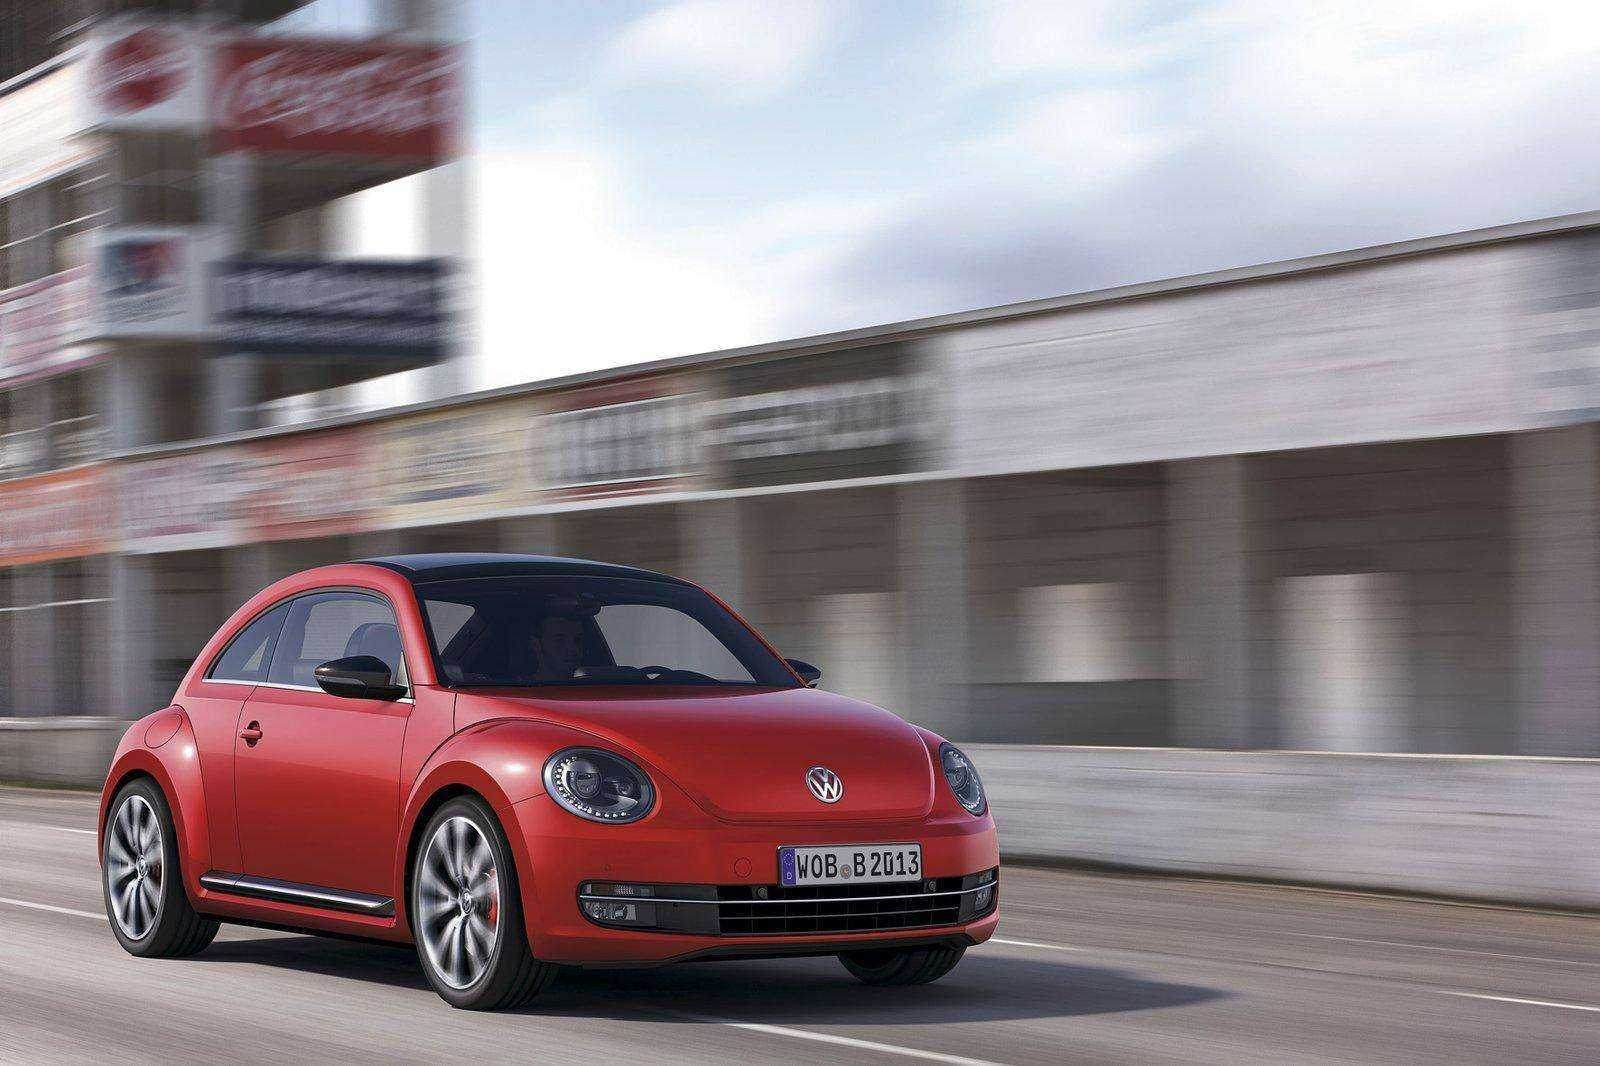 VOLKSWAGEN BEETLE CARS DESIGNS CONCEPT USED CARS 15